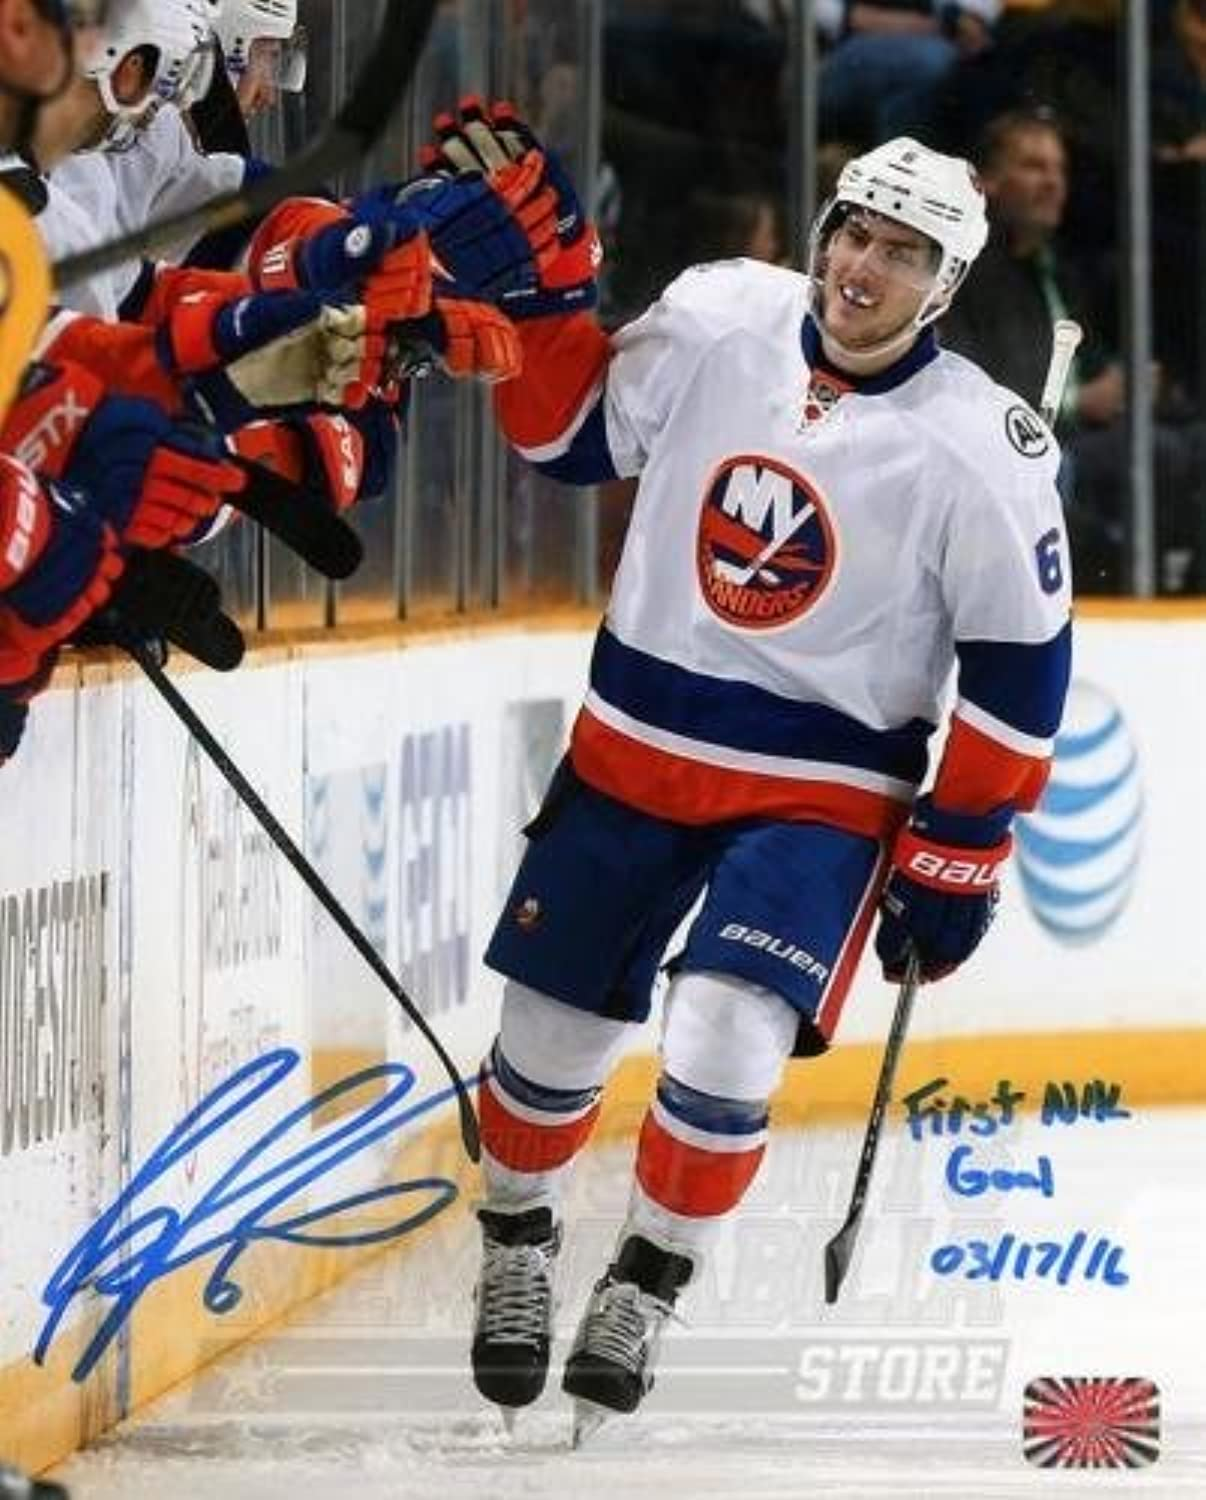 Ryan Pulock New York Islanders Signed Autographed 1st NHL Goal Inscribed 8x10